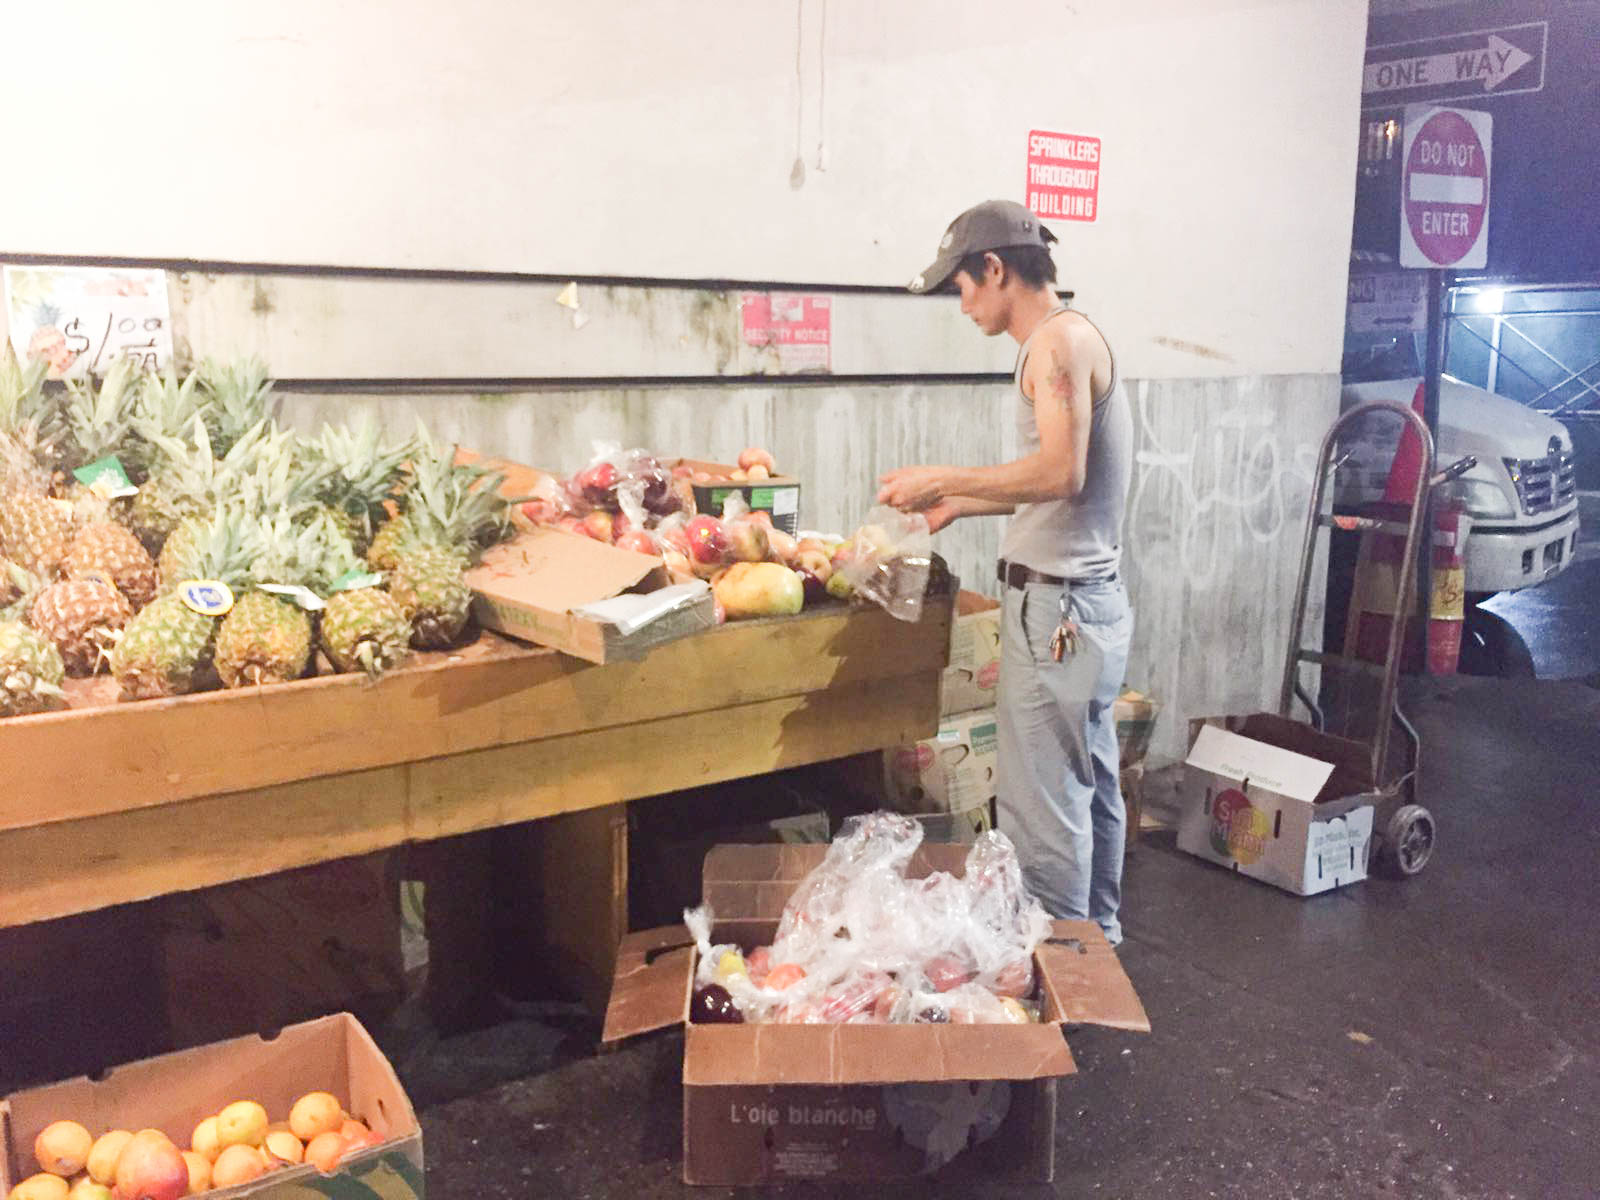 Man repacking fruits to be sold at a cheaper price and in bulk